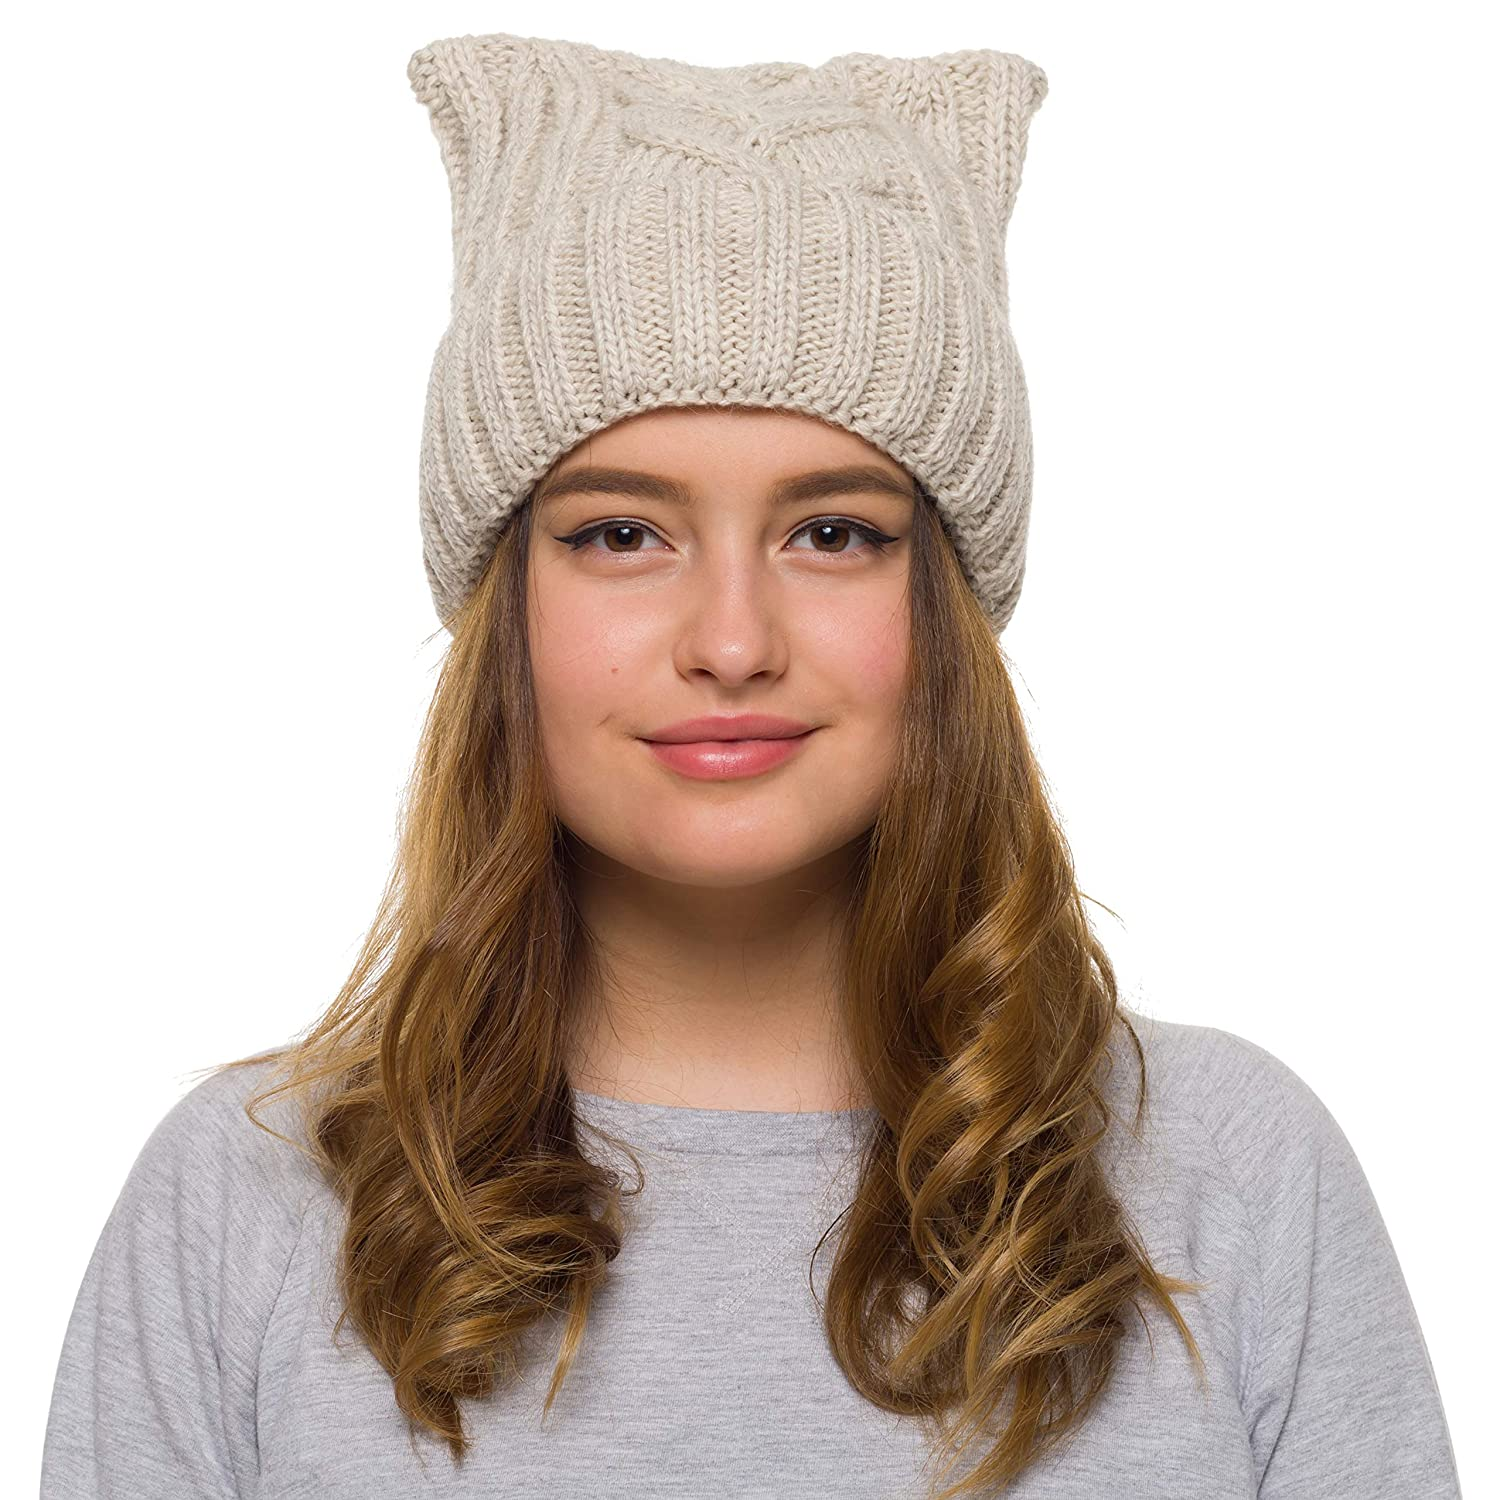 d072db138b2 Pussy Cat Hat Women`s March-Cat Beanie -Winter Hat for Women Lined with  Fleece (Beige) at Amazon Women s Clothing store